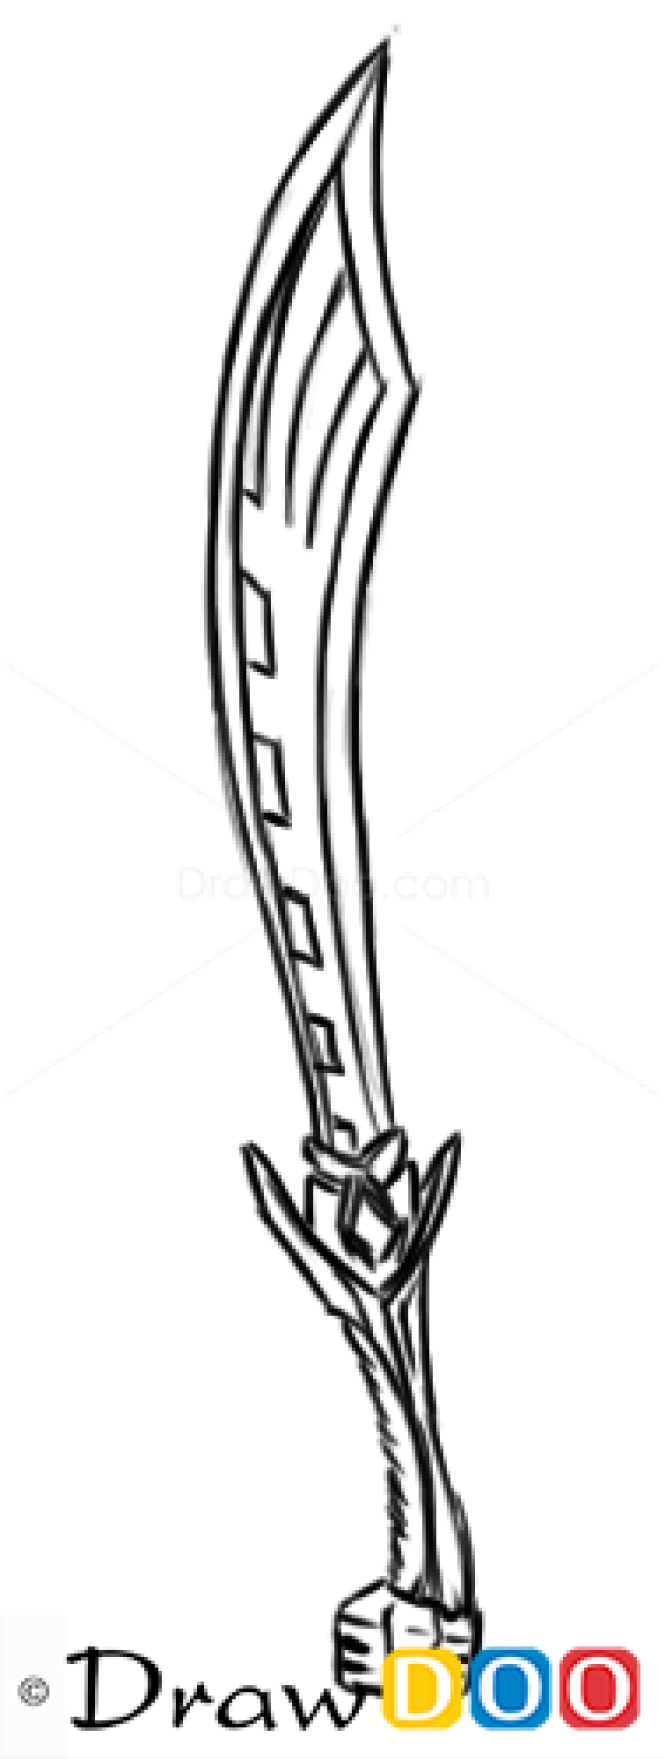 How to Draw Warhammer Game Sword, Cold Arms